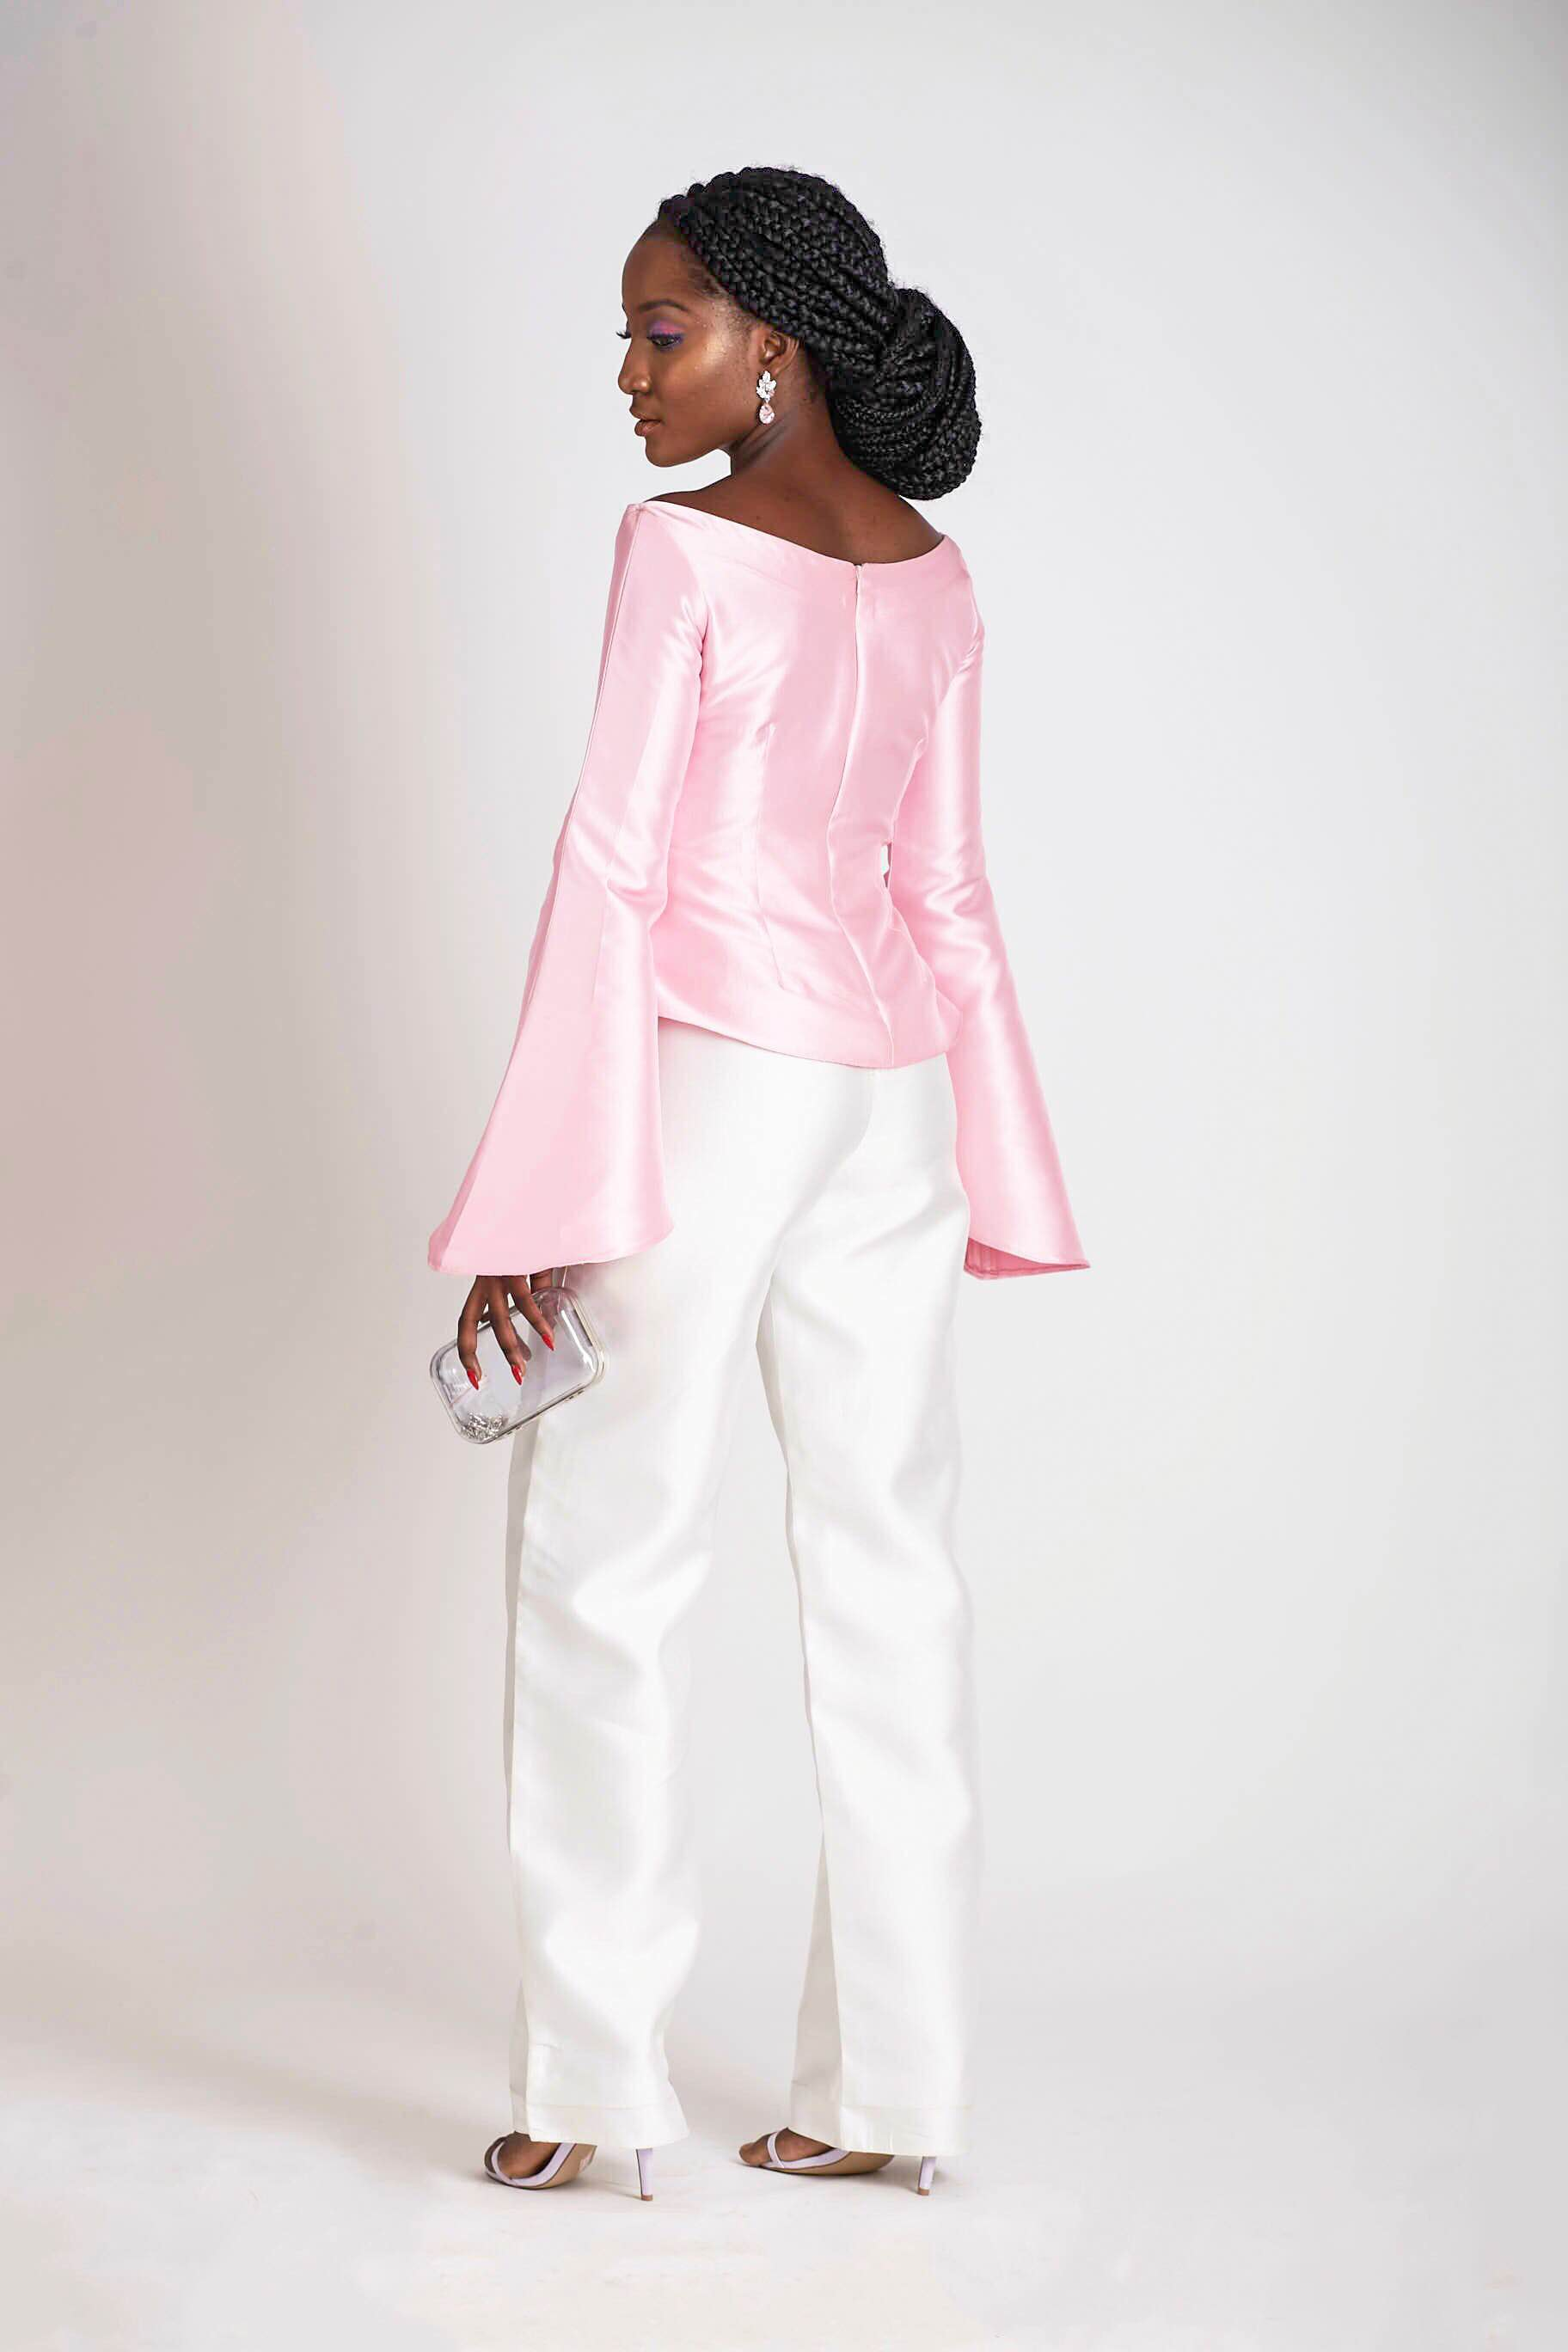 Imad Eduso - BN Style - Collection Lookbook - BellaNaija.com 09